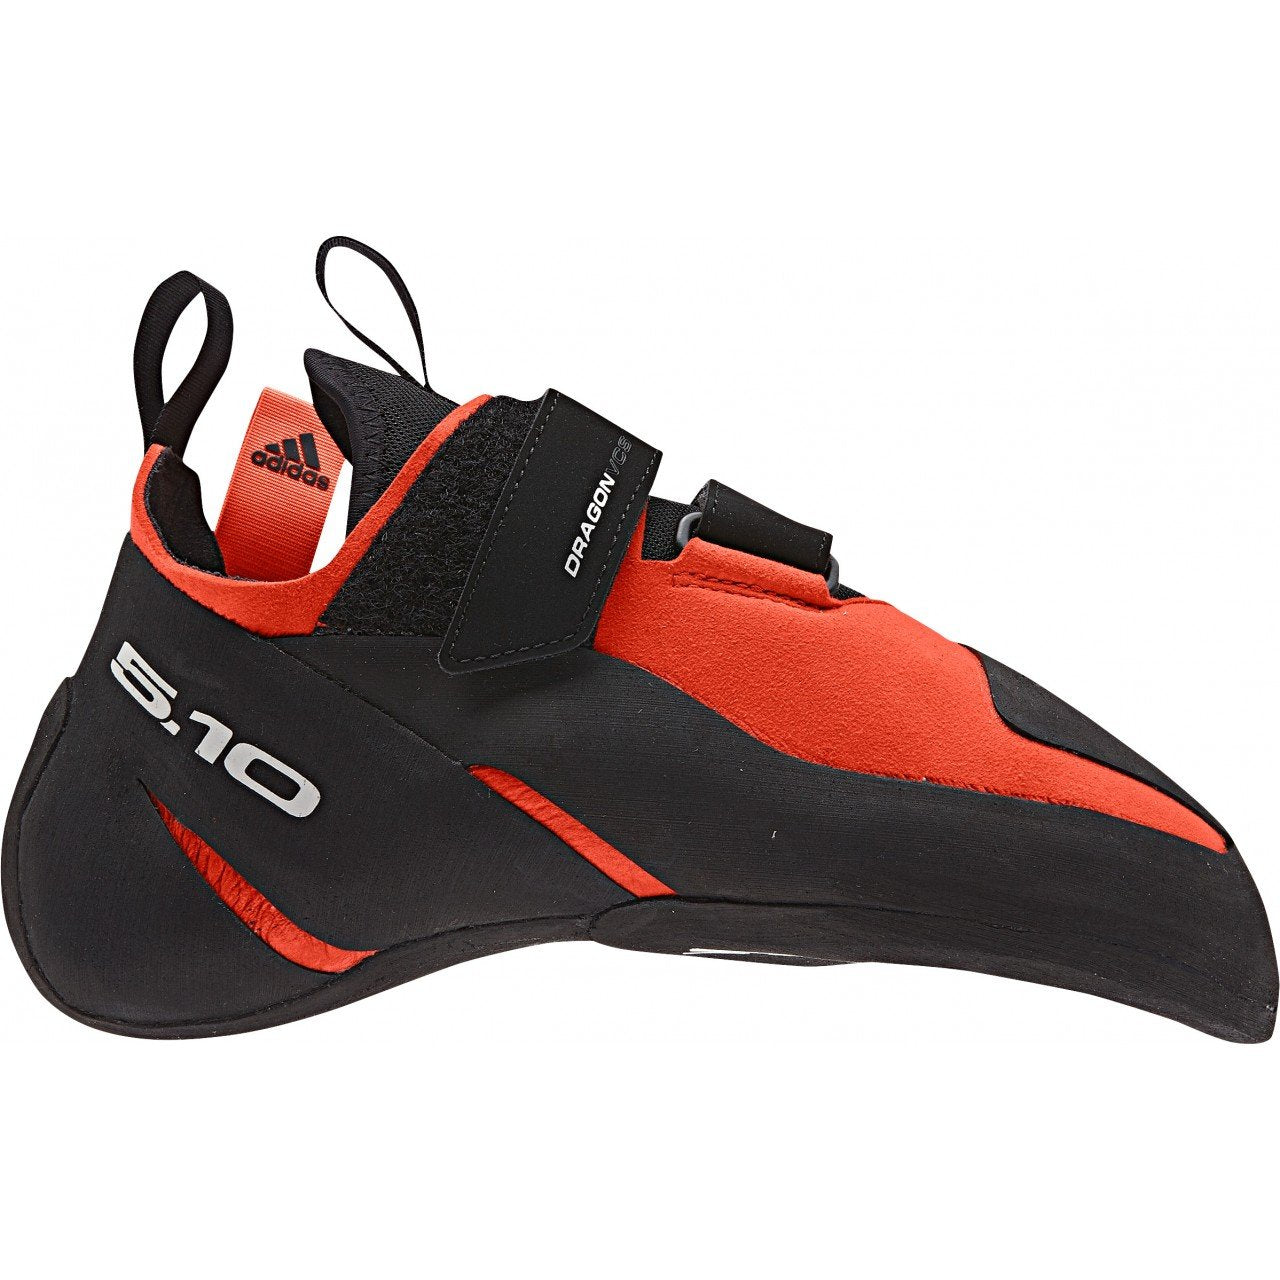 Five Ten Dragon VCS climbing shoe, outer side view in red and black colour